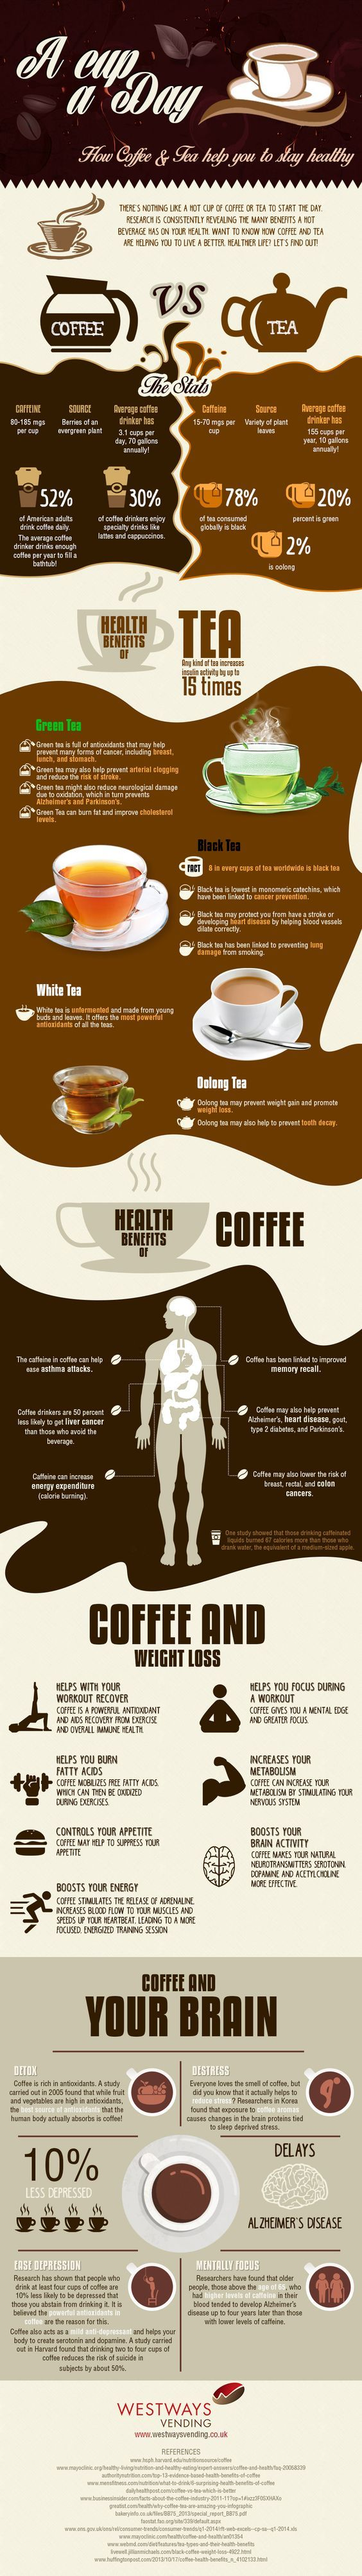 Health Benefits of Coffee and Tea (With images) Coffee